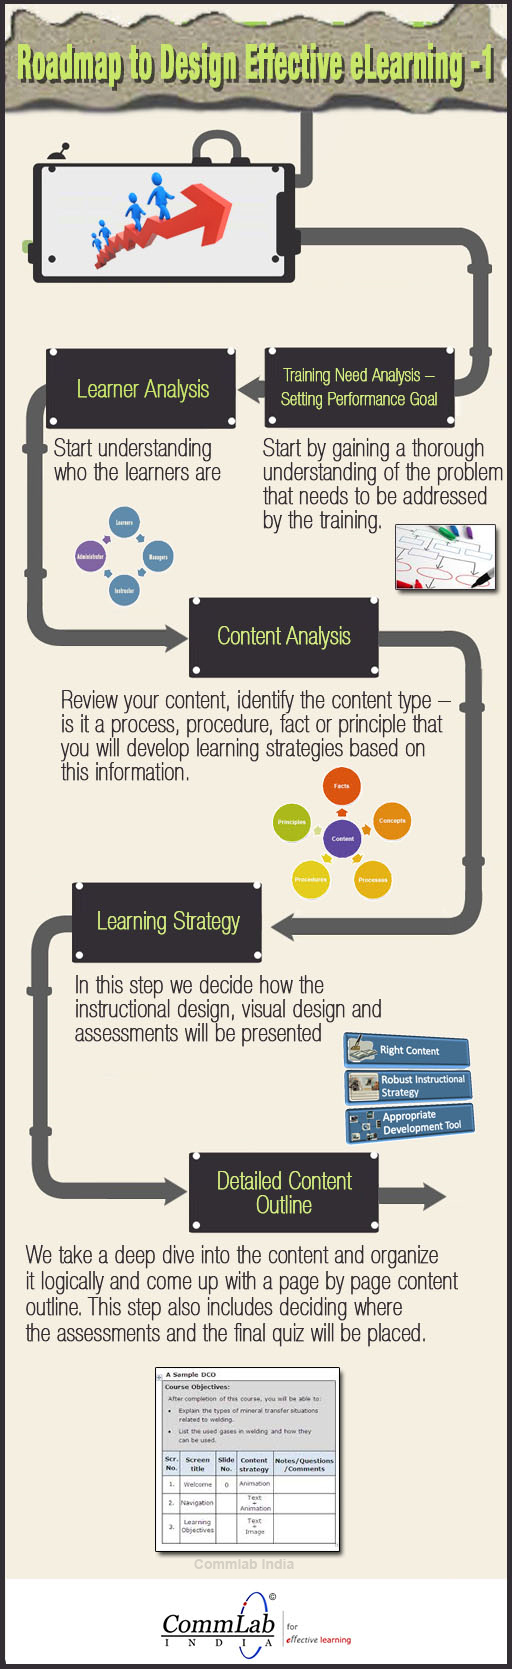 Roadmap To Design Effective eLearning Part1 - An Infographic